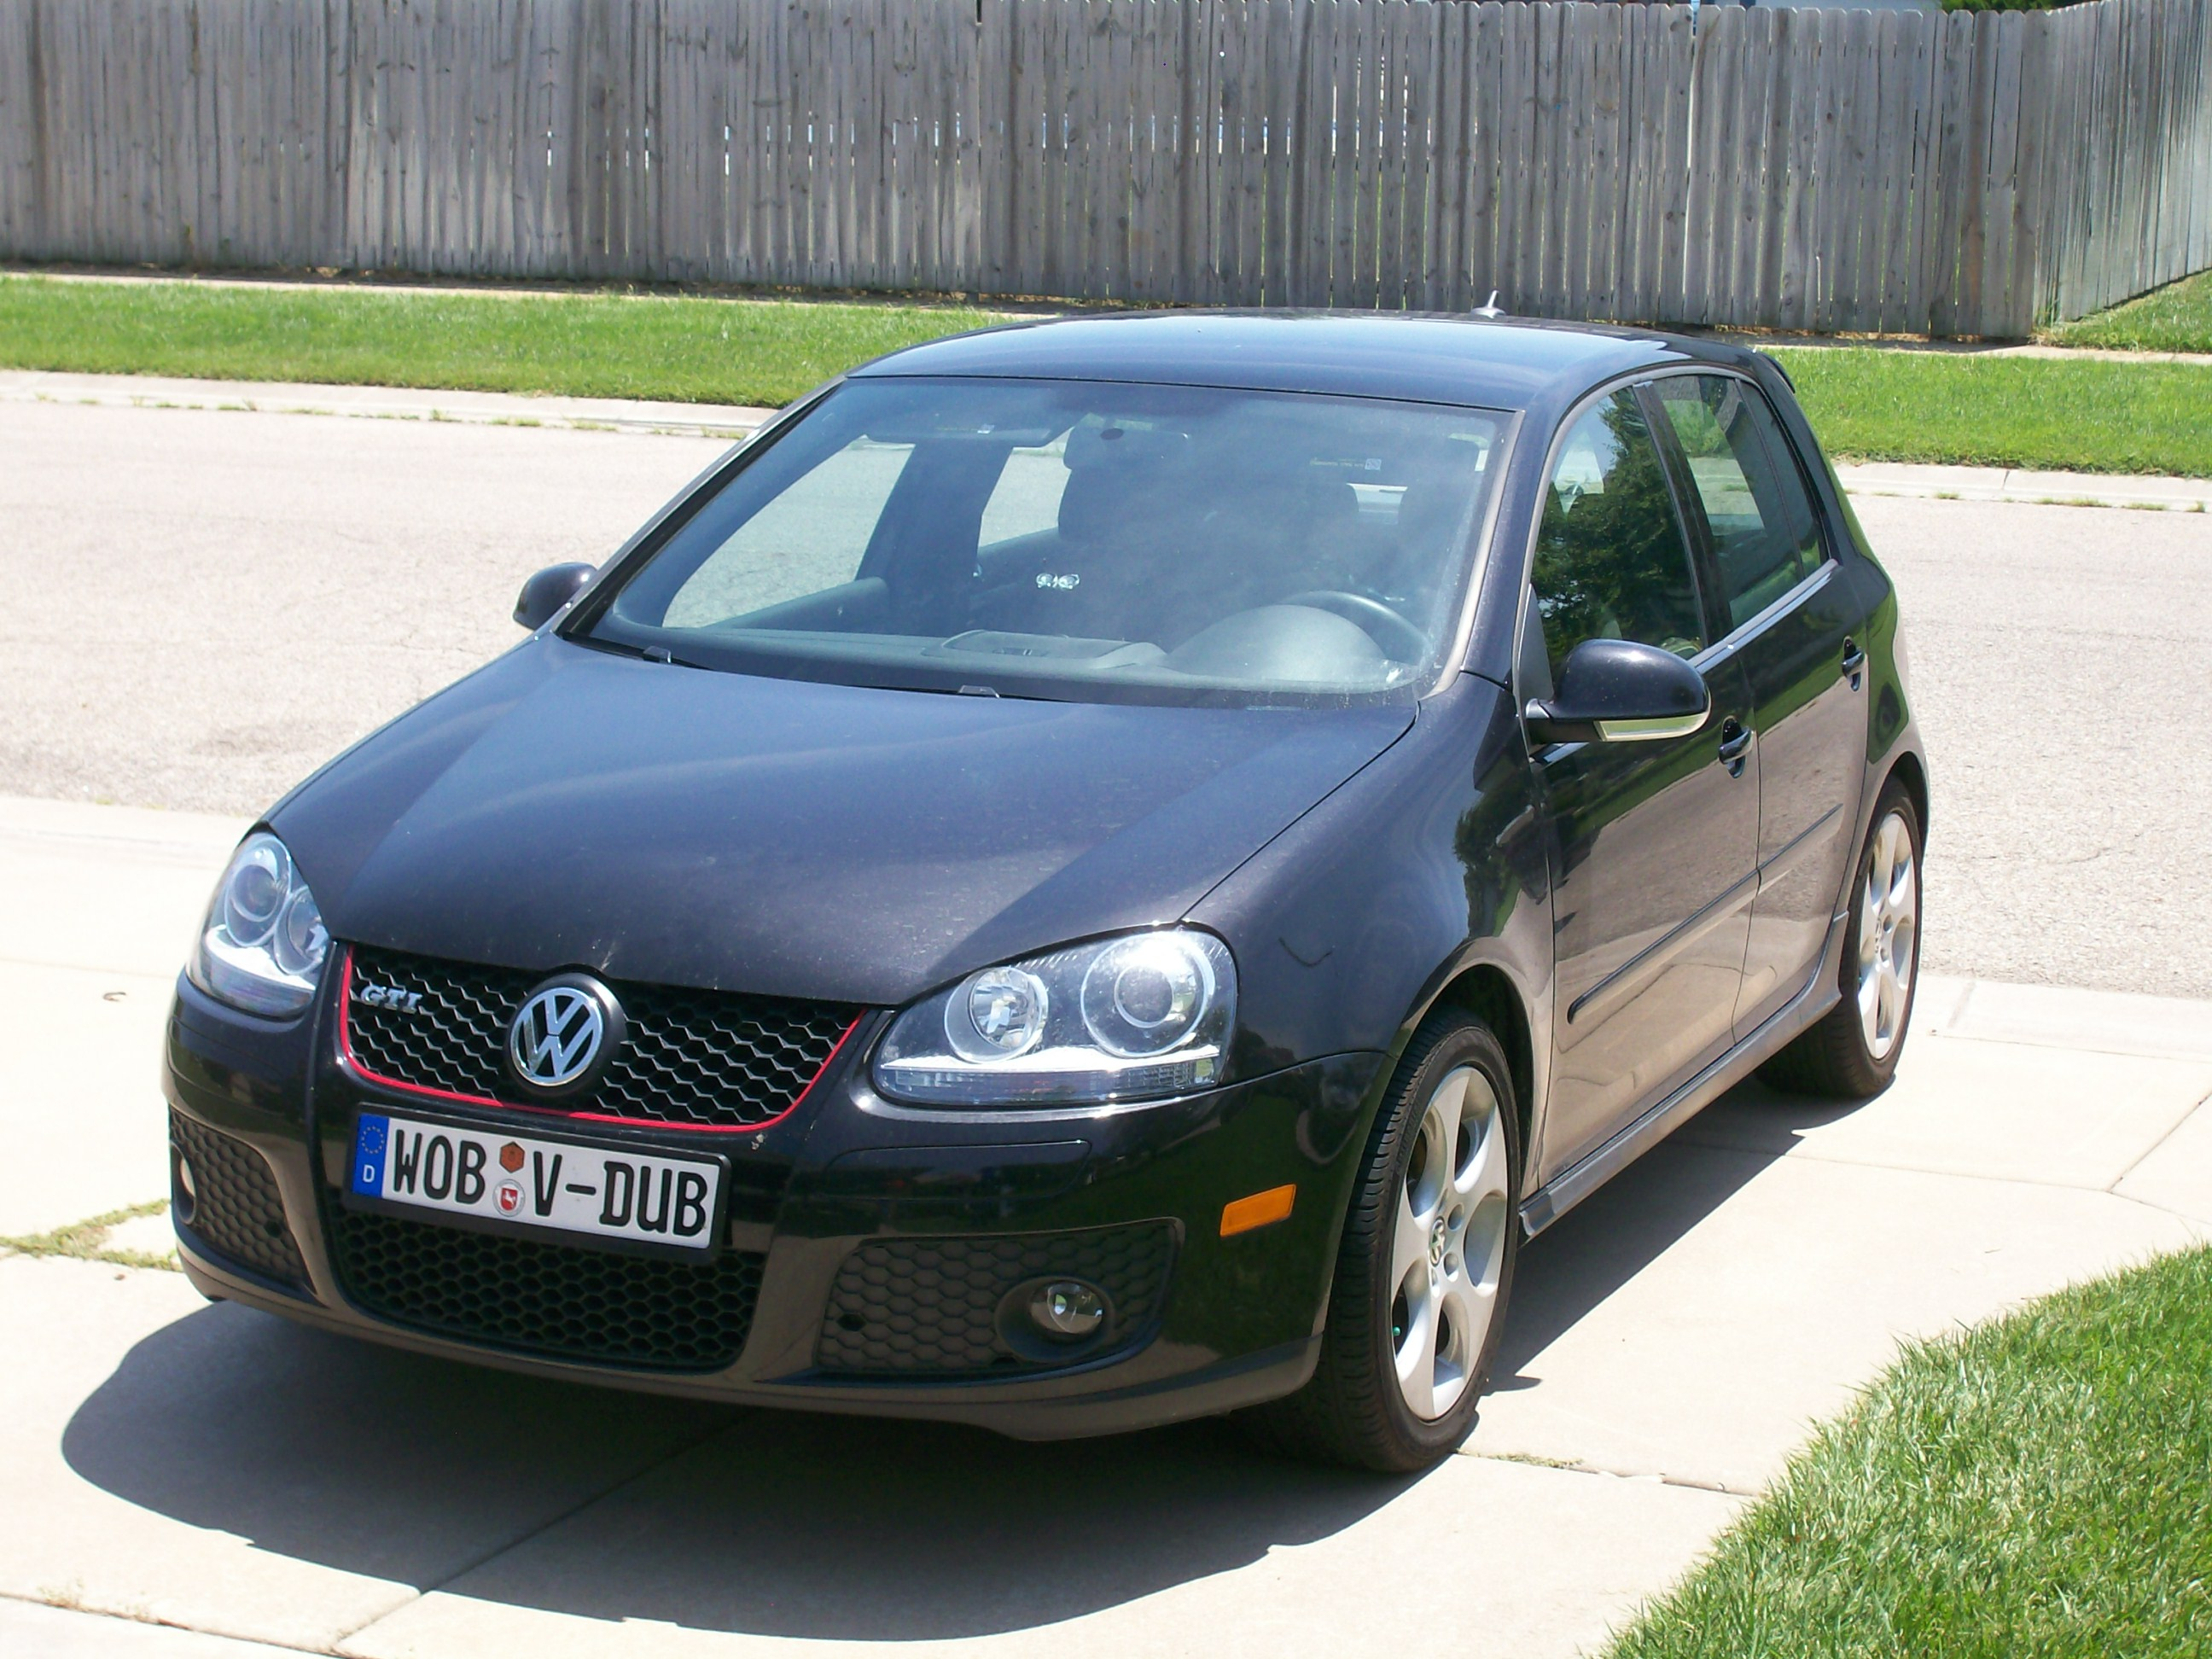 2008  Volkswagen GTI DSG picture, mods, upgrades